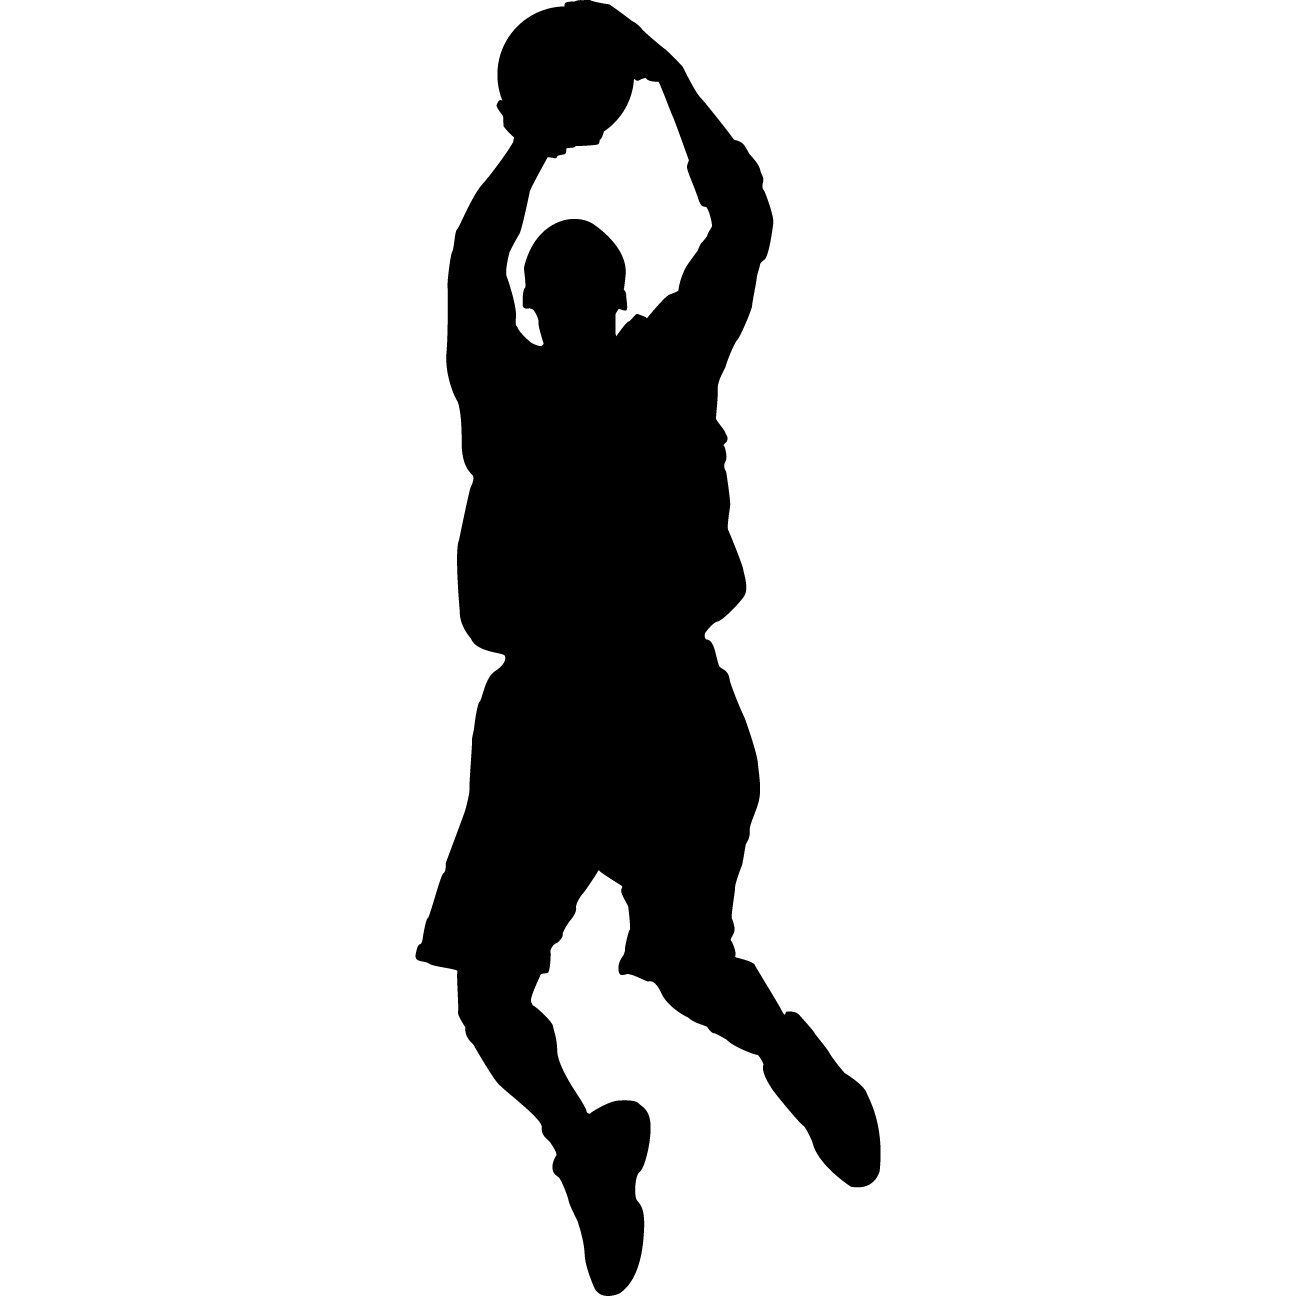 basketball player clipart google search basketball themes rh pinterest com basketball player clipart images girl basketball player clipart